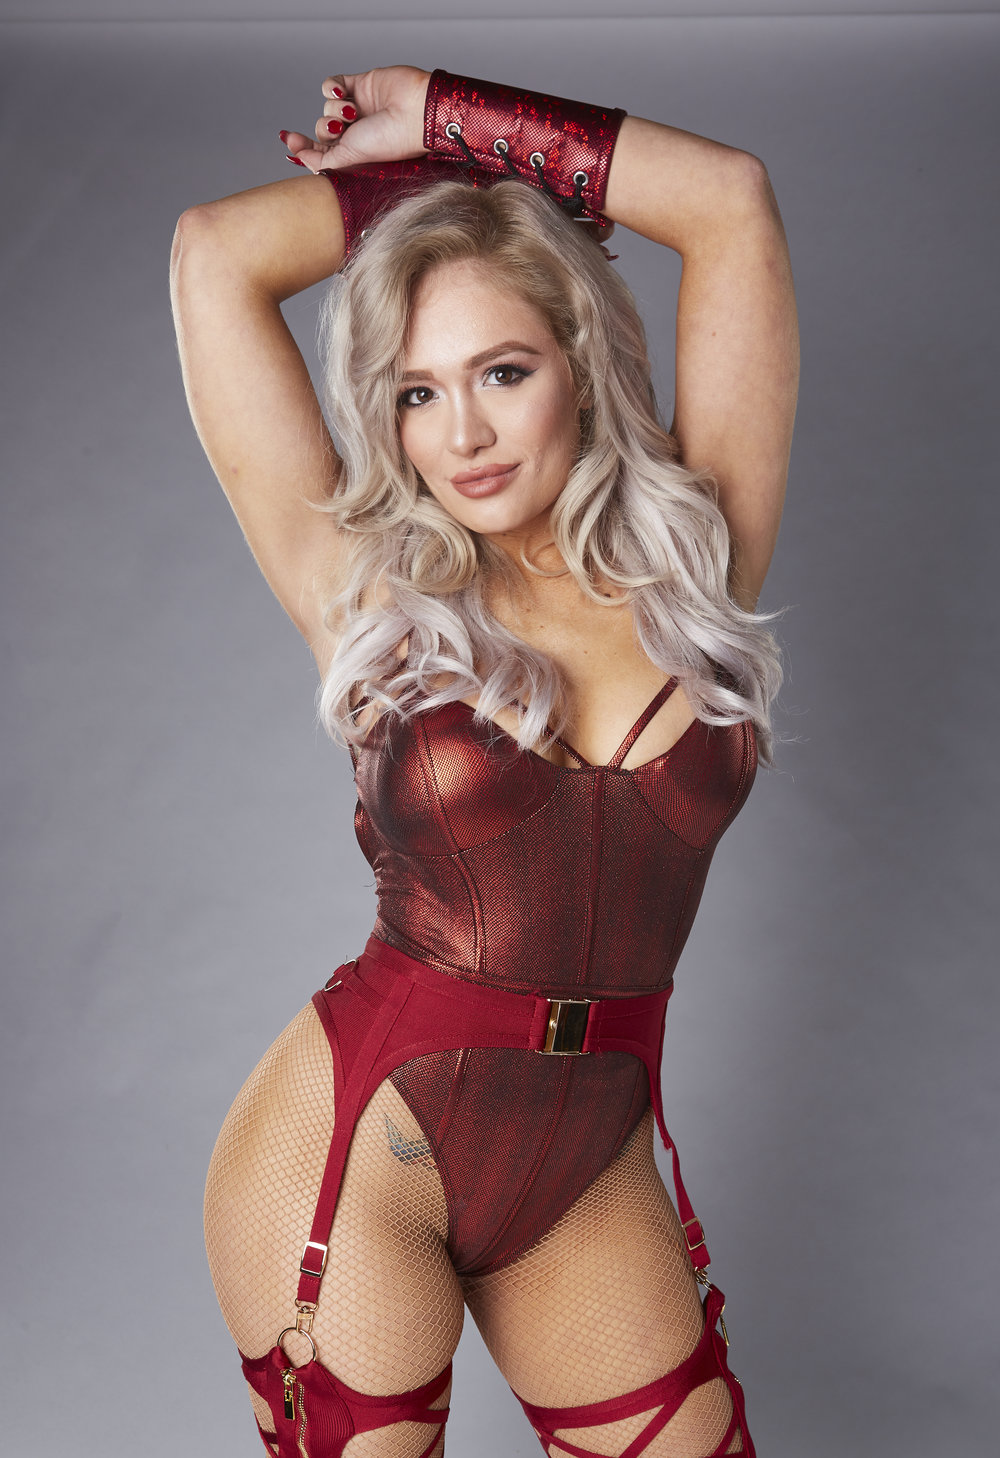 Chicago's Scarlett Bordeaux, graduate of Sandburg High School and Columbia College, is looking to make a name for herself in IMPACT Wrestling.  (Photo courtesy of IMPACTWrestling.com)